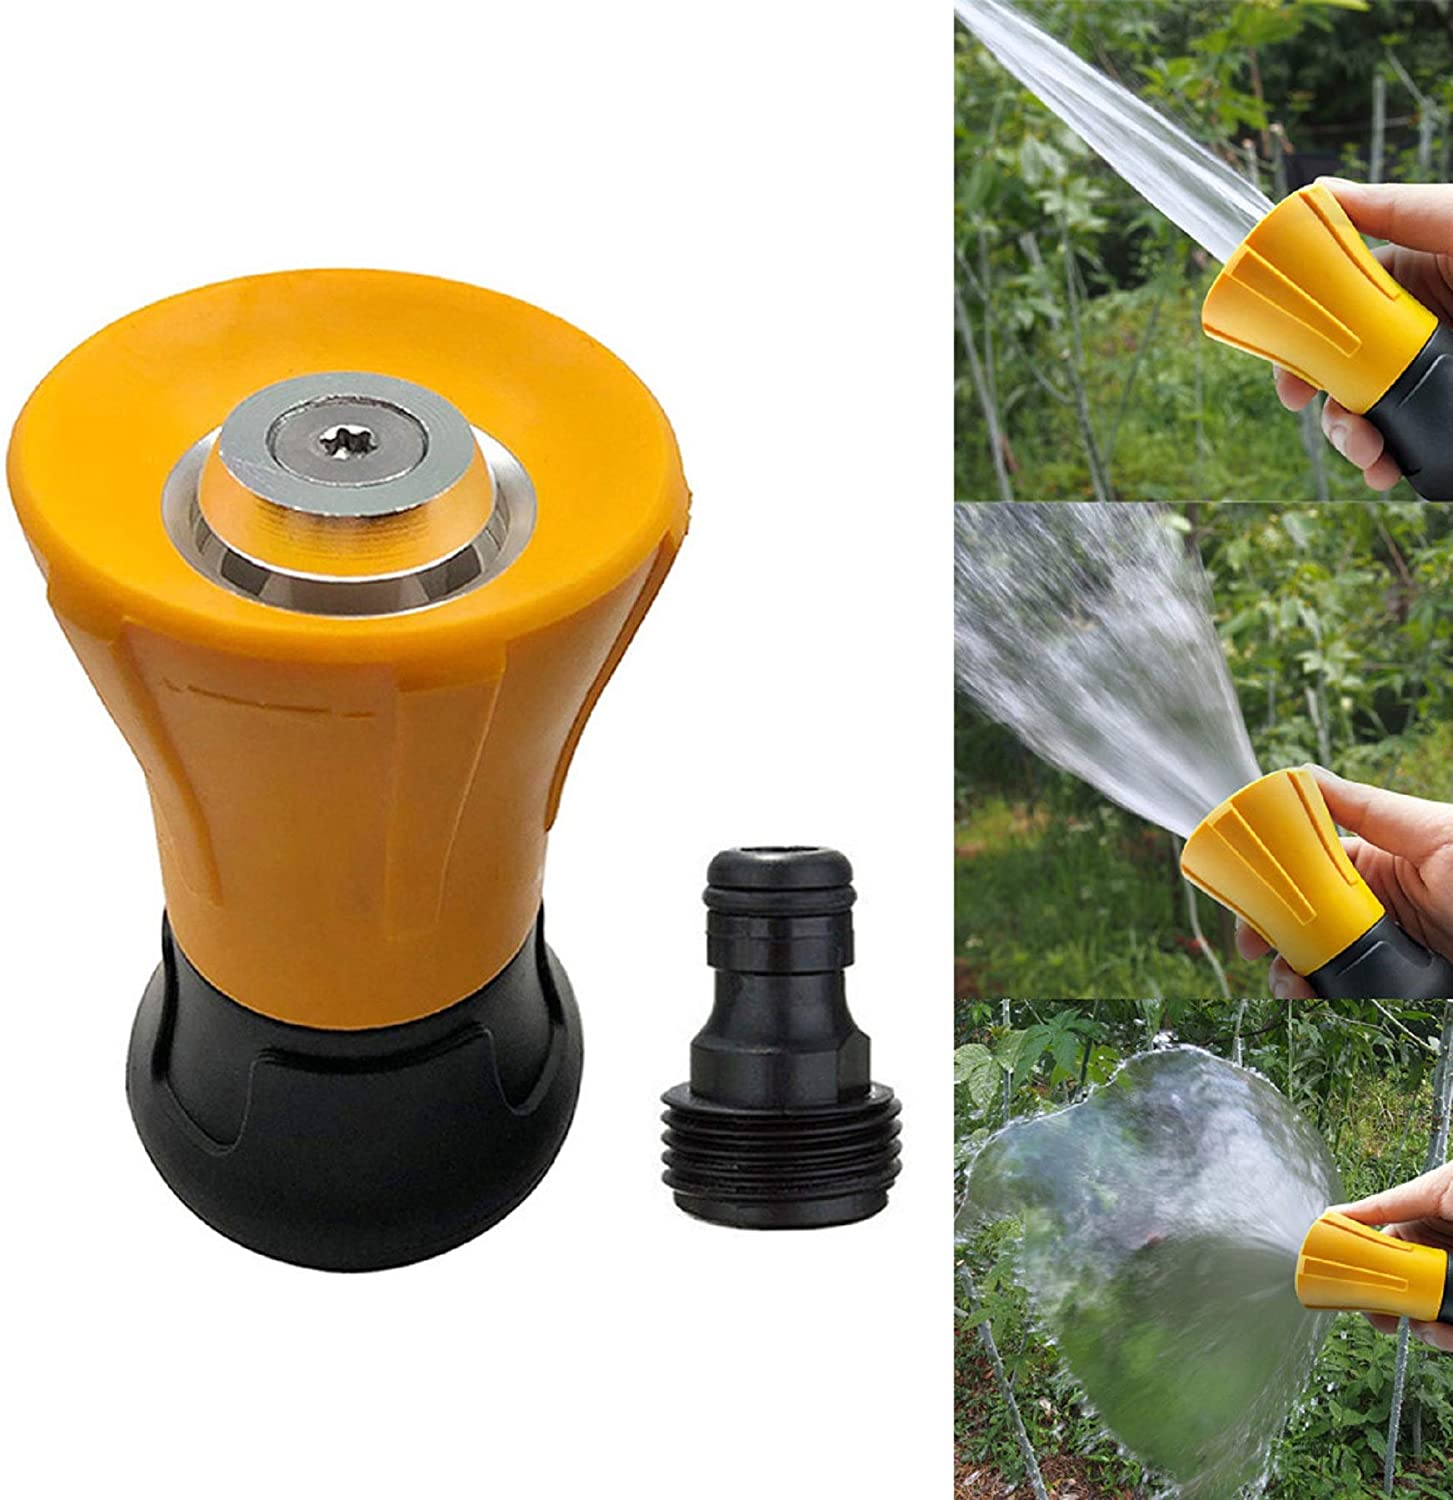 m·kvfa Garden Hose Nozzle Water Spray High-Pressure Spray Nozzle Sprinkler Adjustable for Hand Watering Plants Lawn Car Washing Patio and Dog